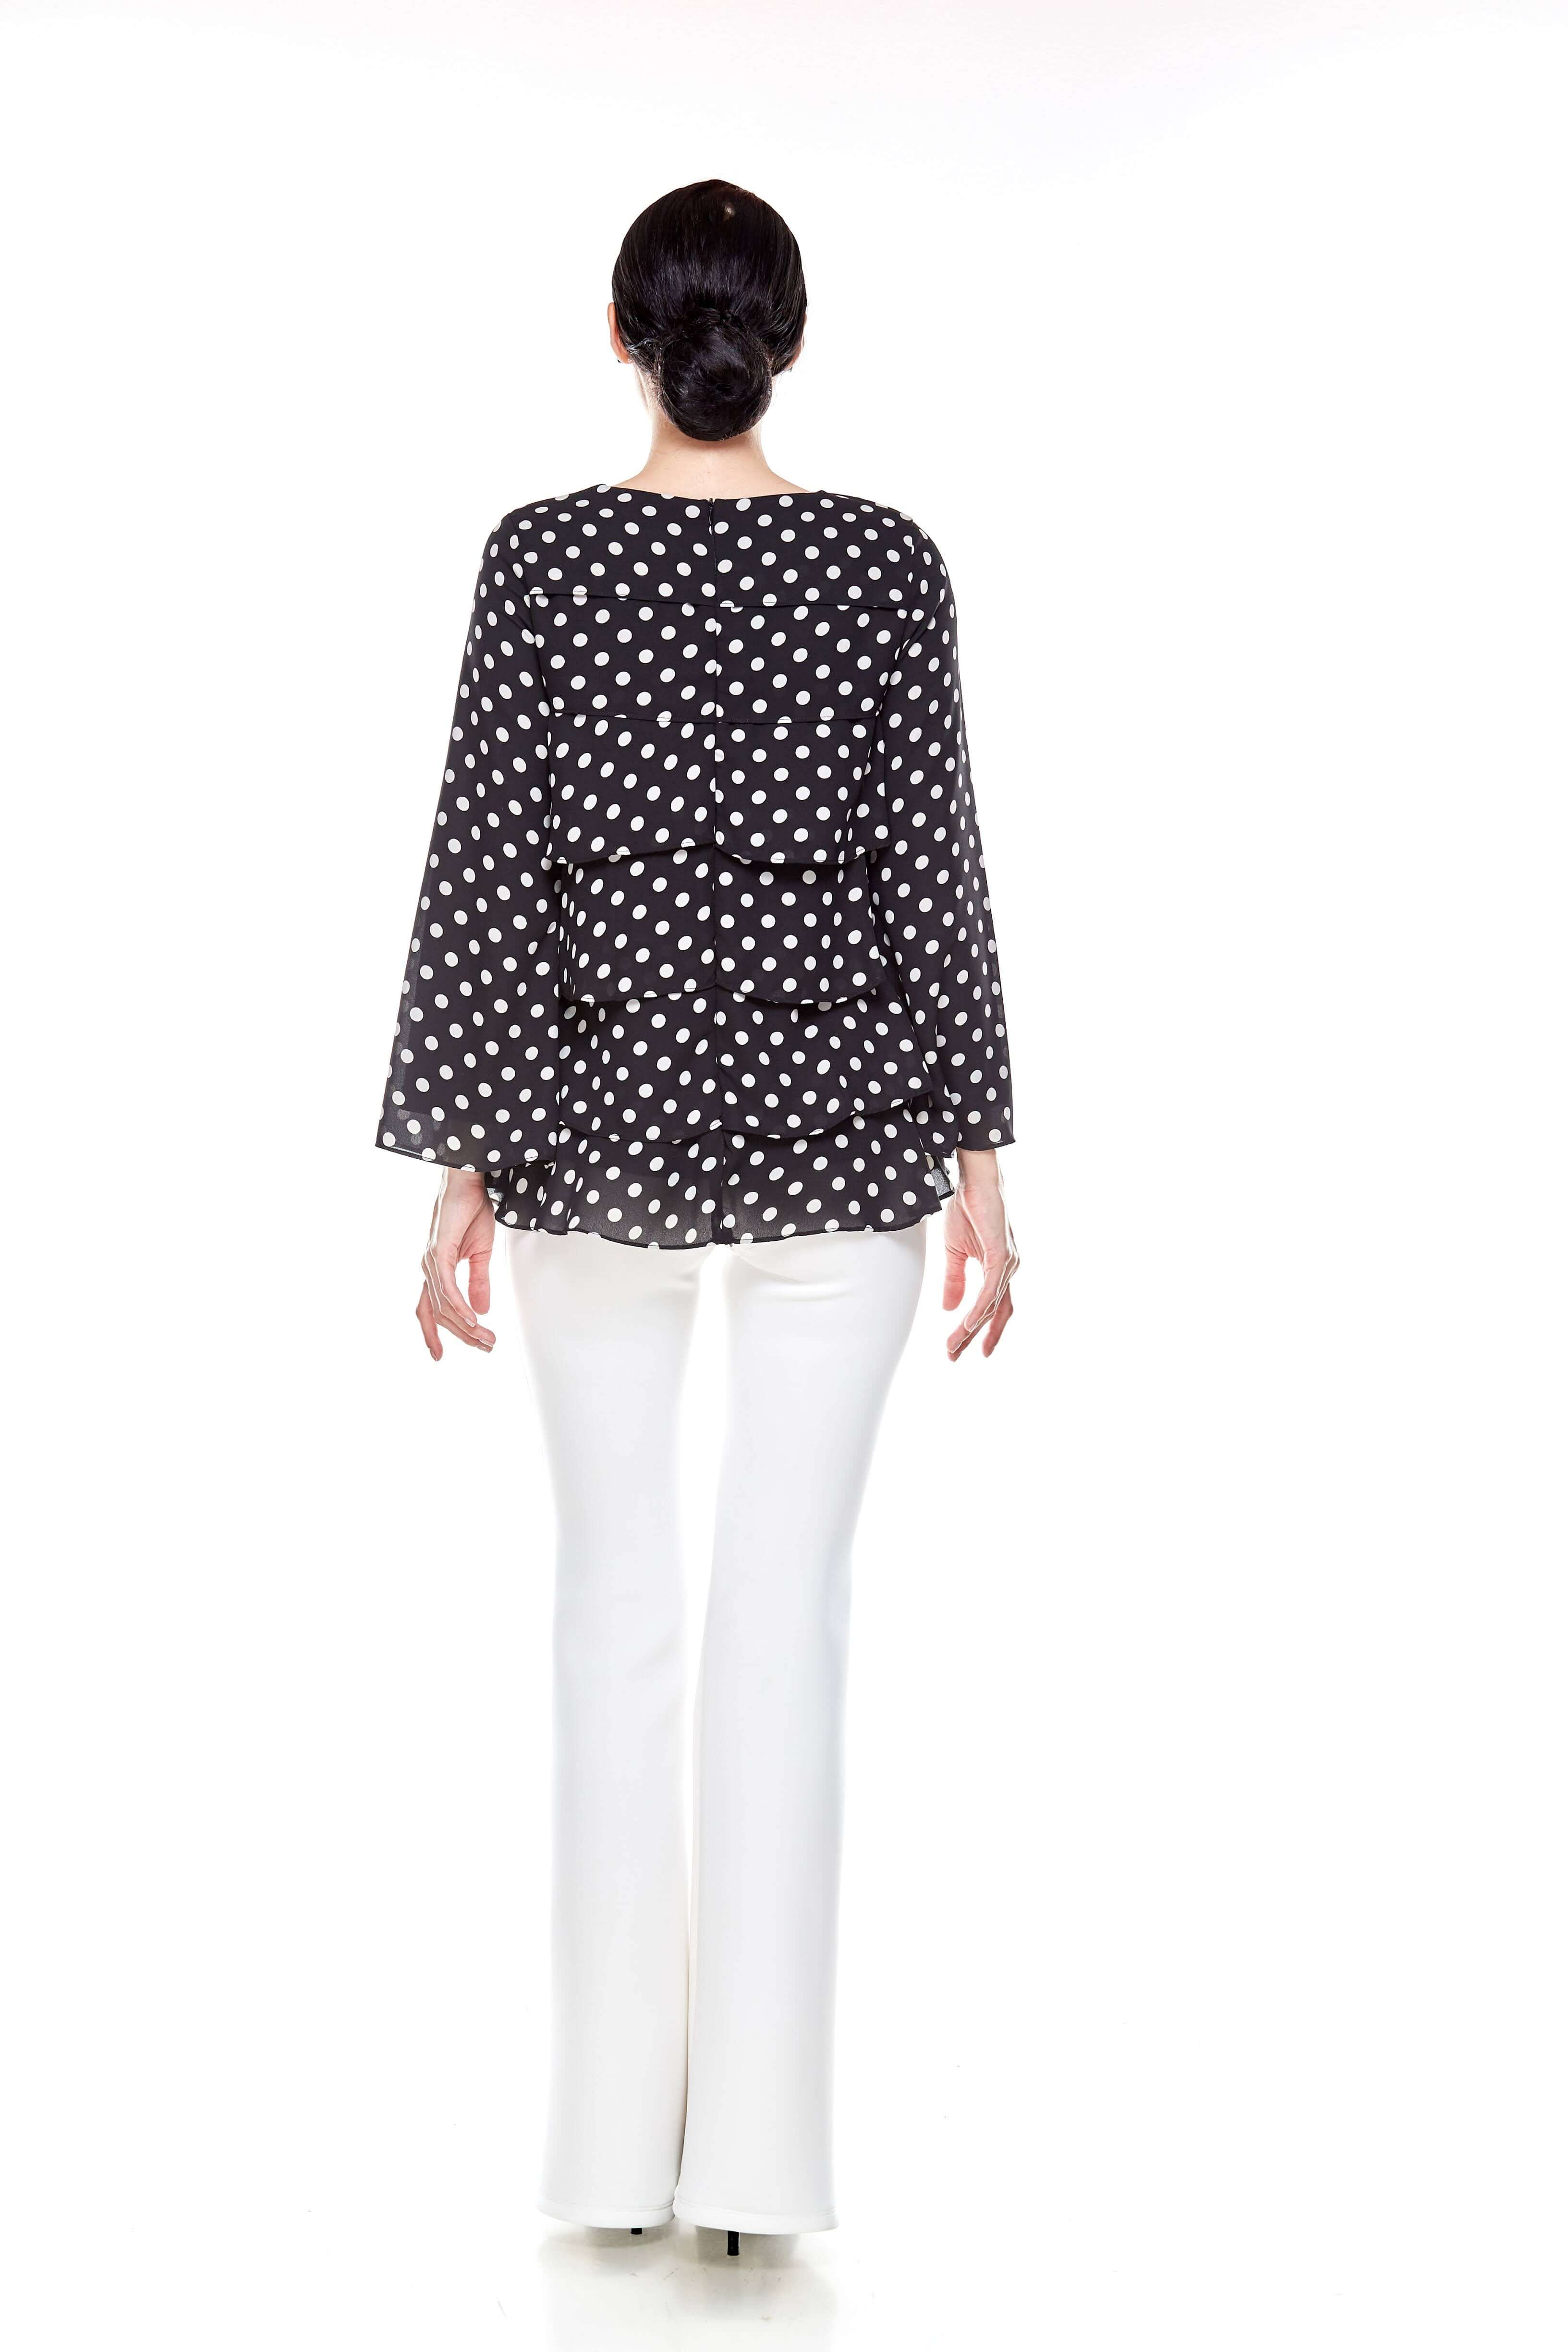 Black Tier Polka Dot Blouse (6)